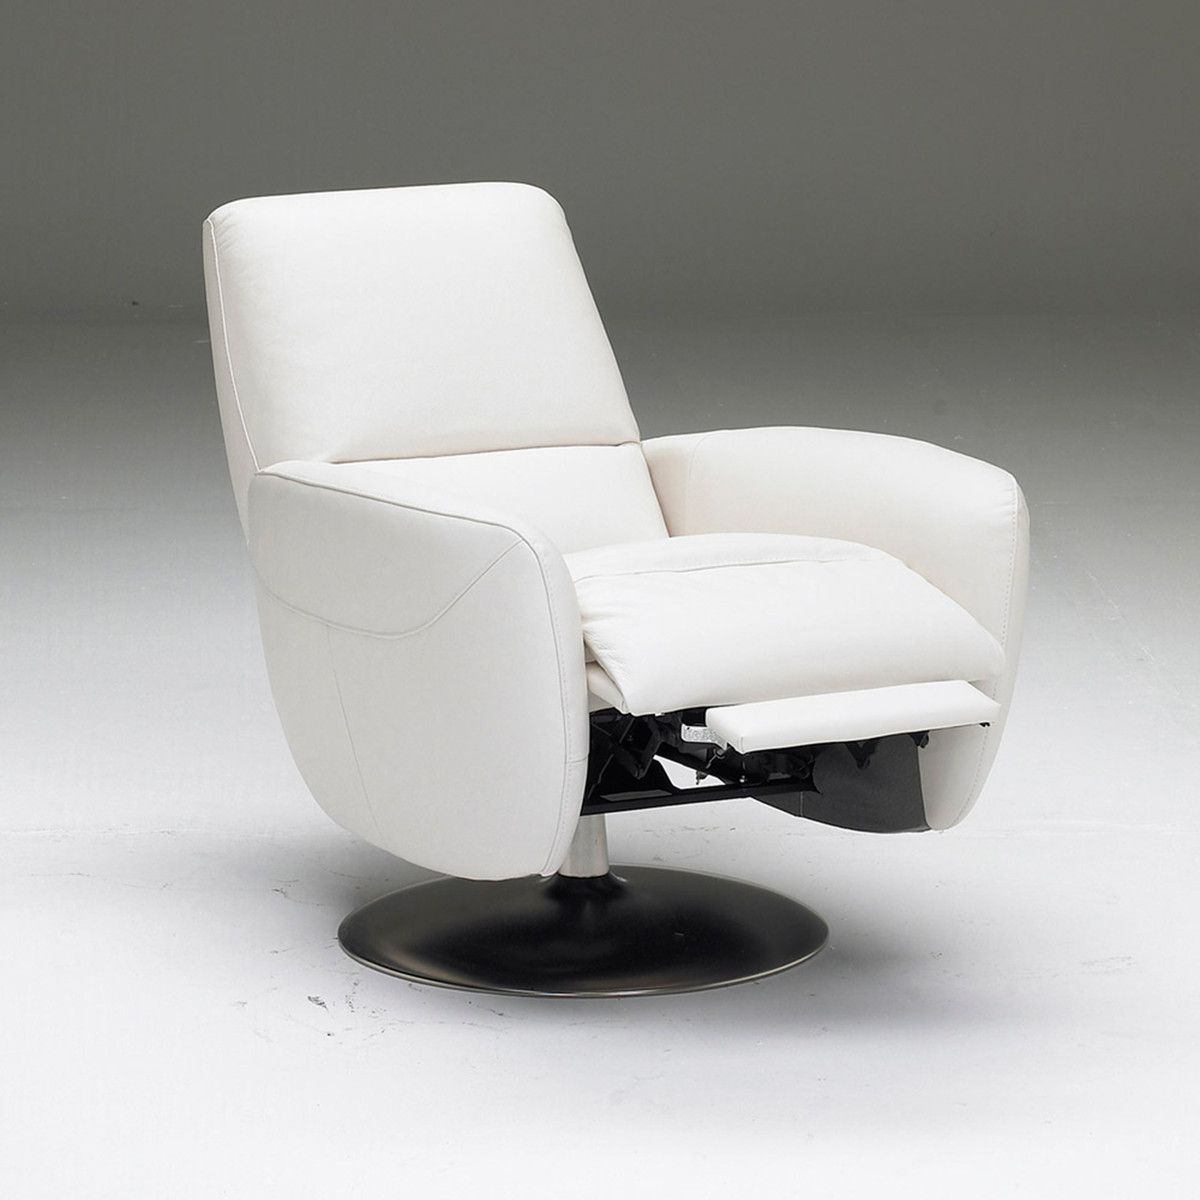 Genny swivel armchair cream. looks super comfy and i only need one